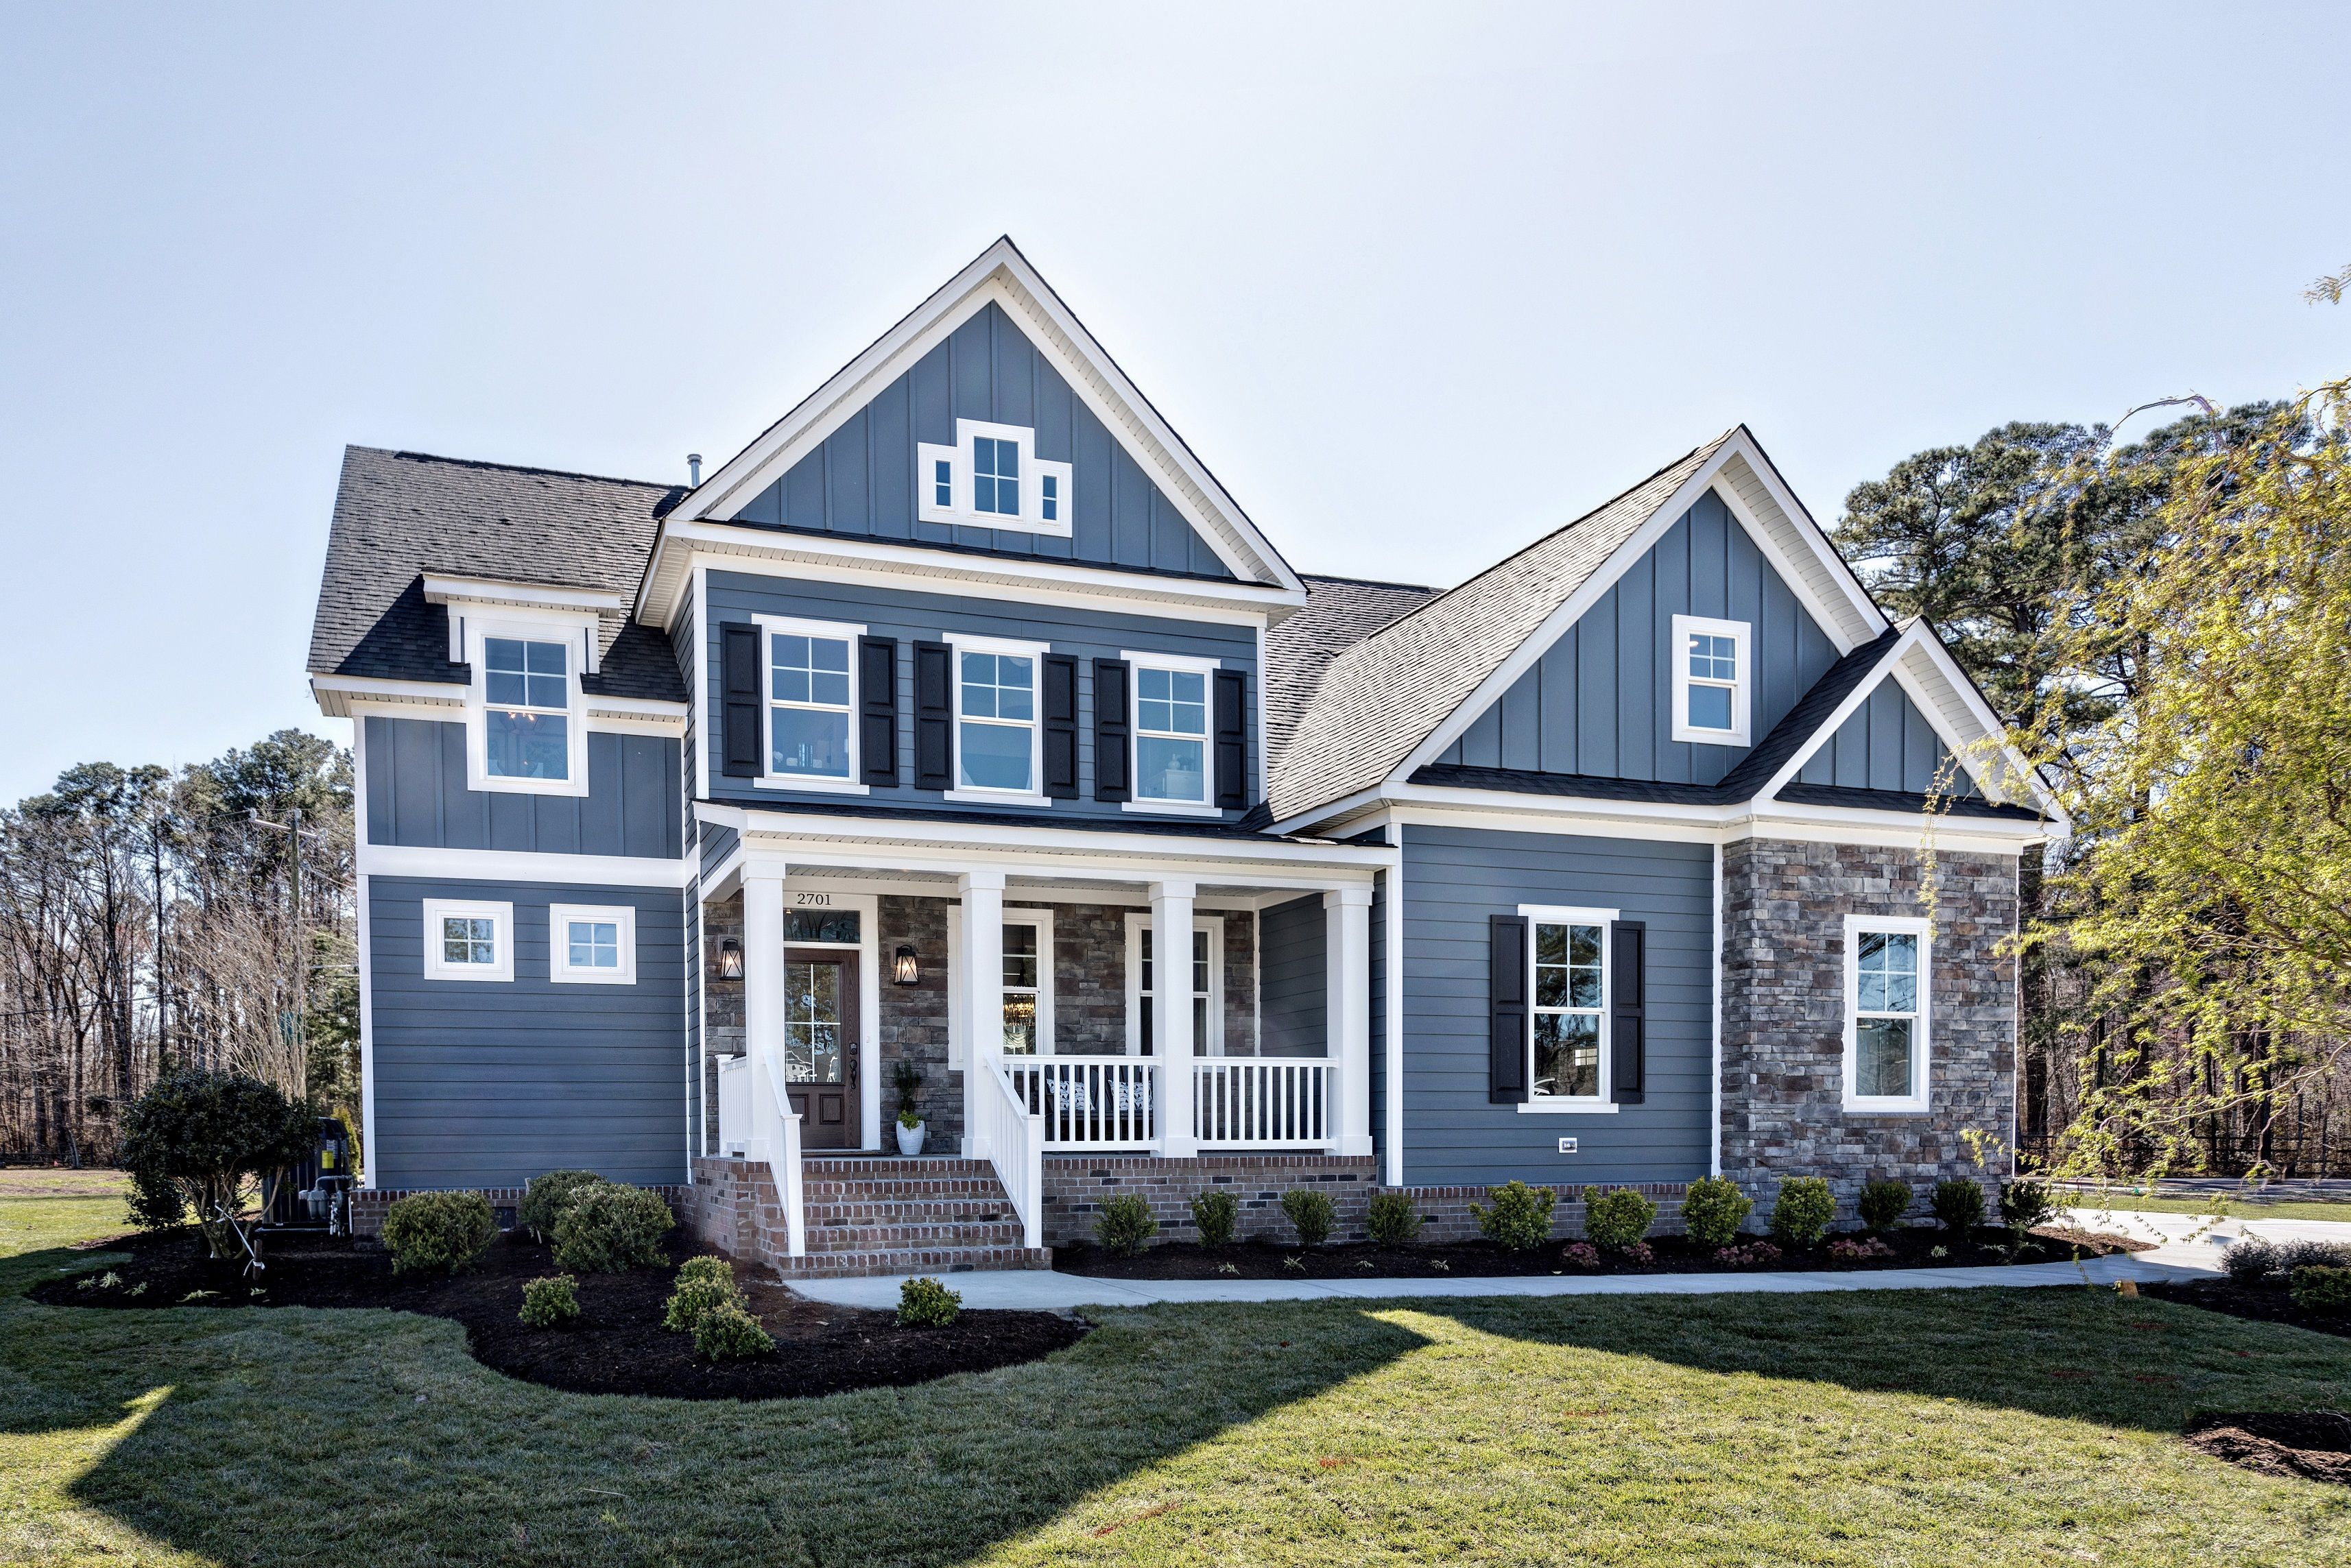 6000 Series Siding Experience The Ultimate In Energy Efficient Comfort With Insulated Vinyl Siding This In 2020 Vinyl Siding Insulated Vinyl Siding Farmhouse Homes